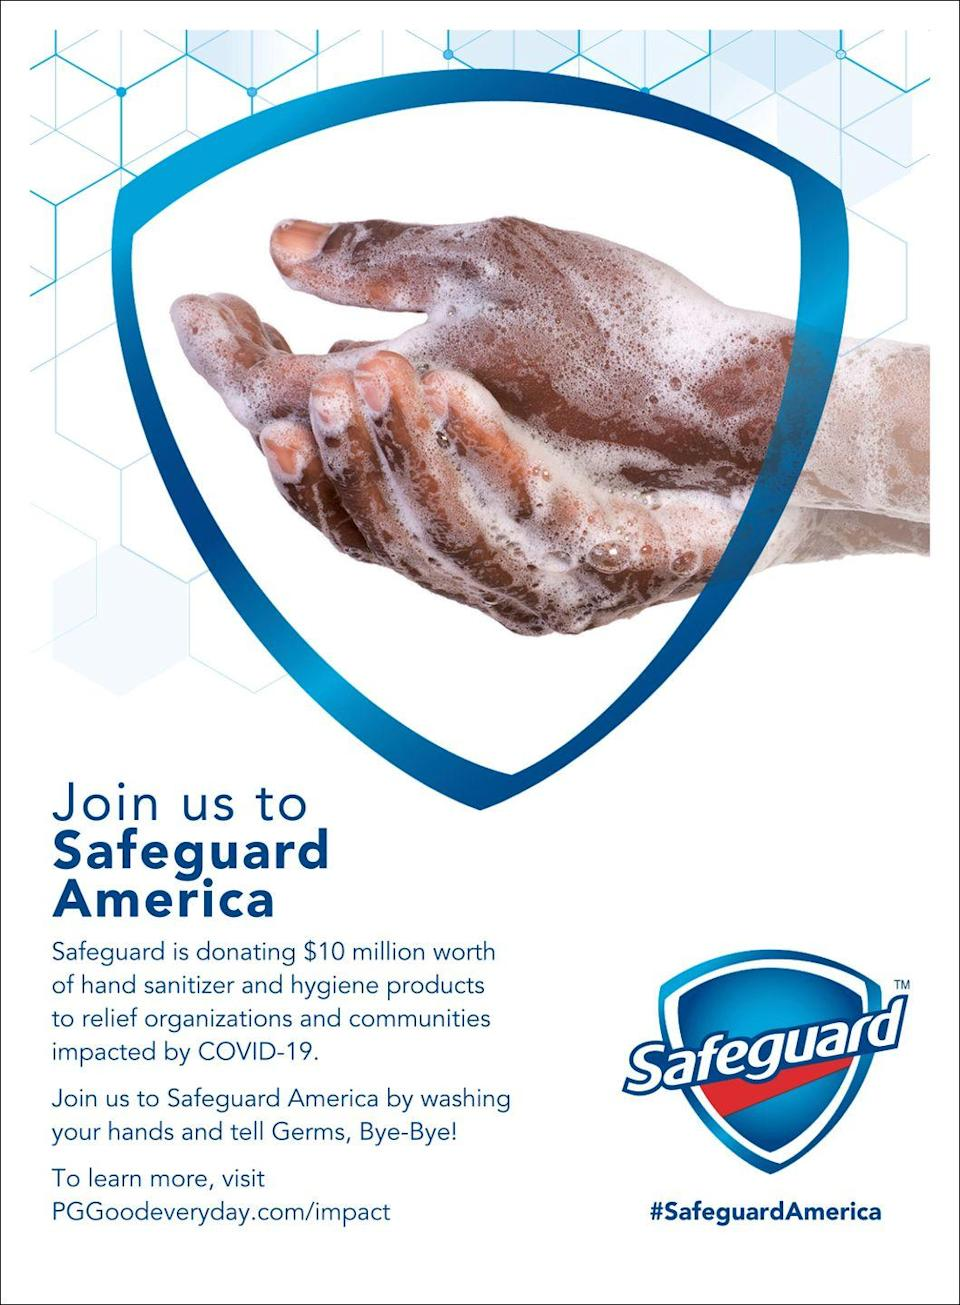 """<p>Join us to Safeguard America </p><p>Safeguard is donating $10 million worth of hand sanitizer and hygiene products to relief organizations and communities impacted by COVID-19. </p><p>Join us to Safeguard America by washing your hands and tell Germs, Bye-Bye! </p><p><em>To learn more, visit <a href=""""https://www.pggoodeveryday.com/impact/"""" rel=""""nofollow noopener"""" target=""""_blank"""" data-ylk=""""slk:here."""" class=""""link rapid-noclick-resp"""">here.</a></em></p><p>#SafeguardAmerica</p>"""